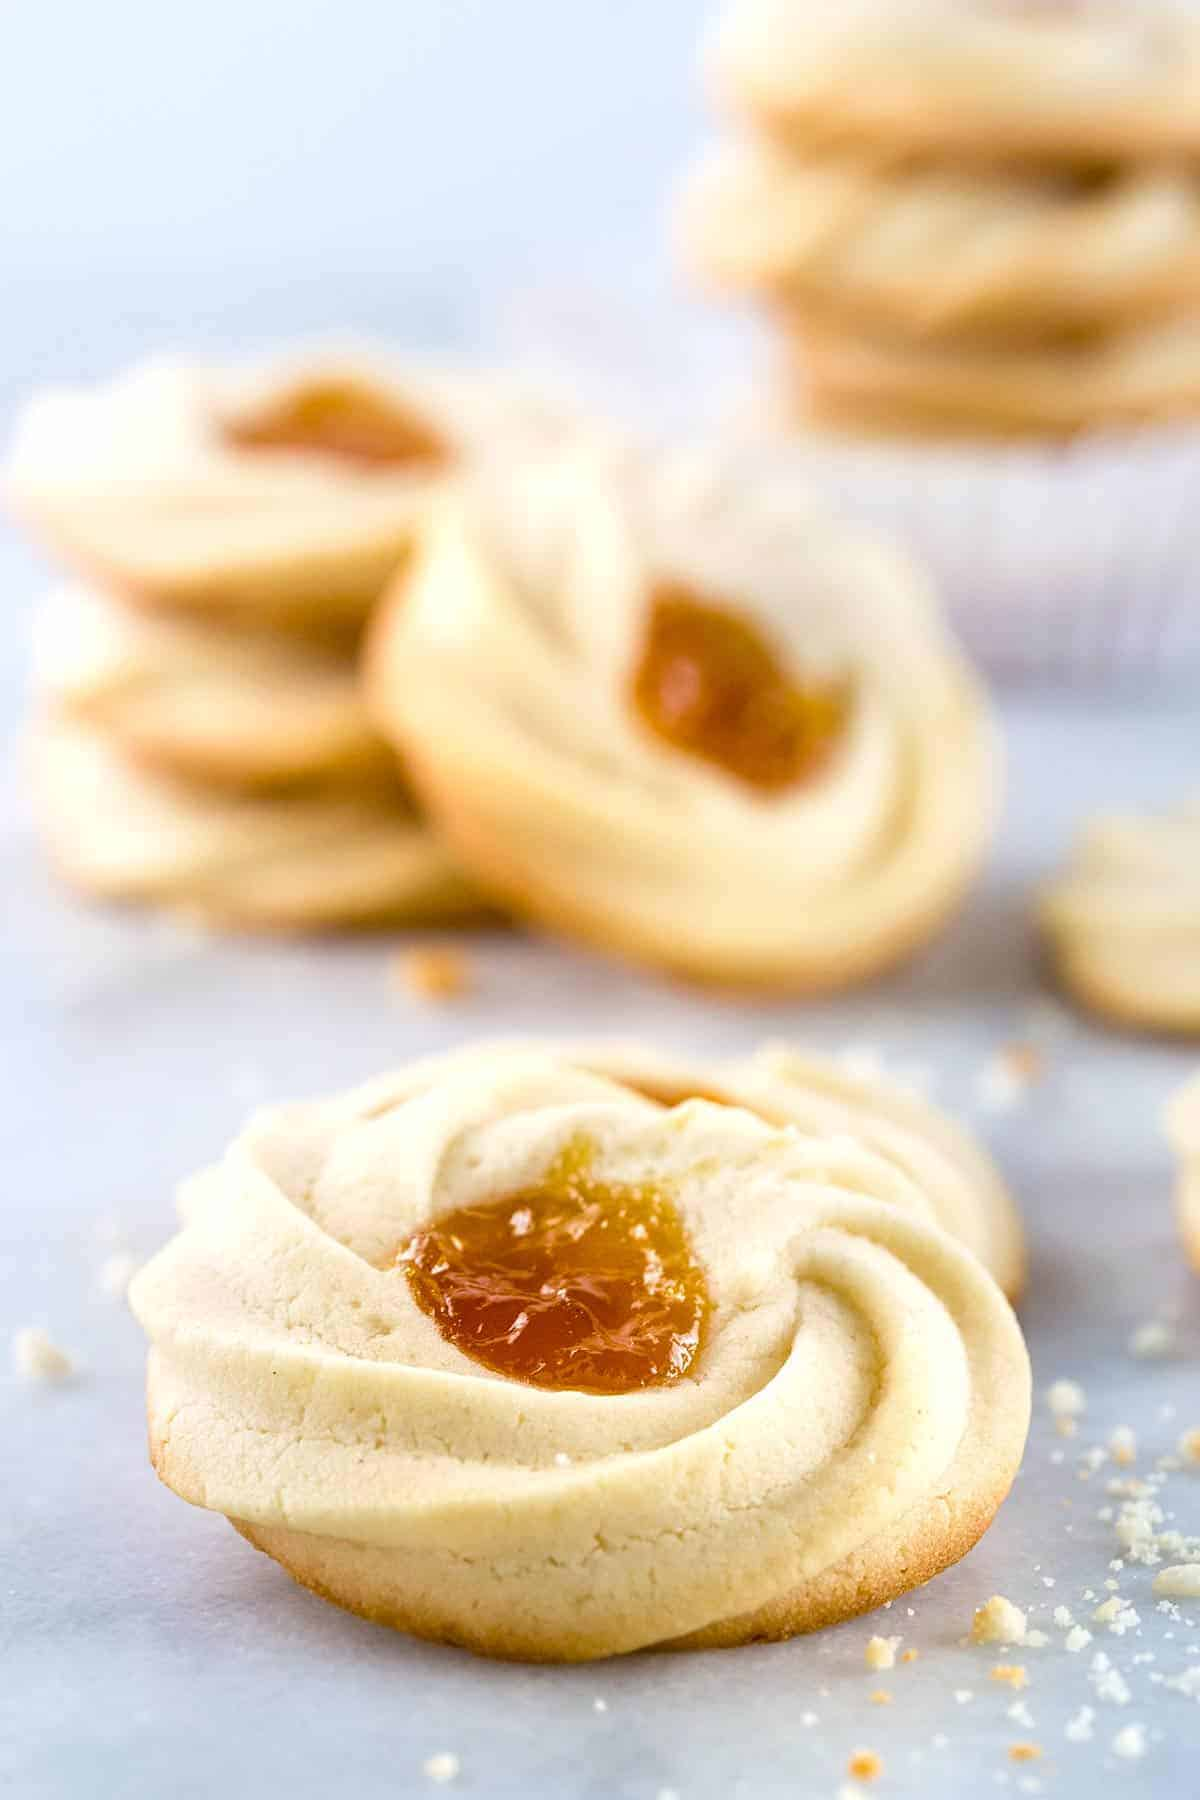 Apricot Spritz Cookie - Elegant sweets that delicately crumble in the mouth for instant bliss. The buttery cookies can be filled with any special fruit jam of your choice! | jessicagavin.com